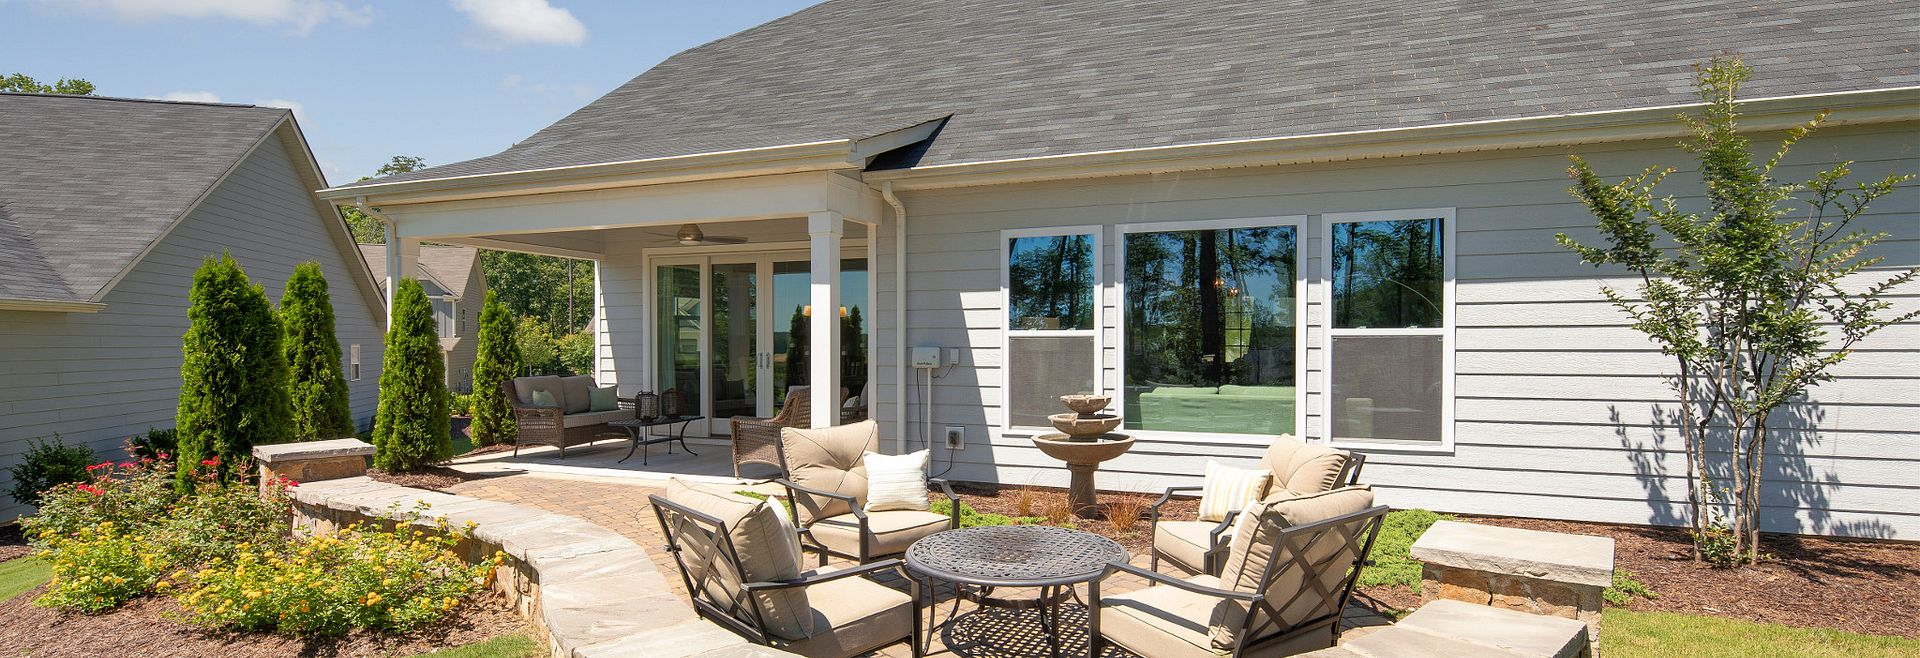 Wyndham model Porch & Patio